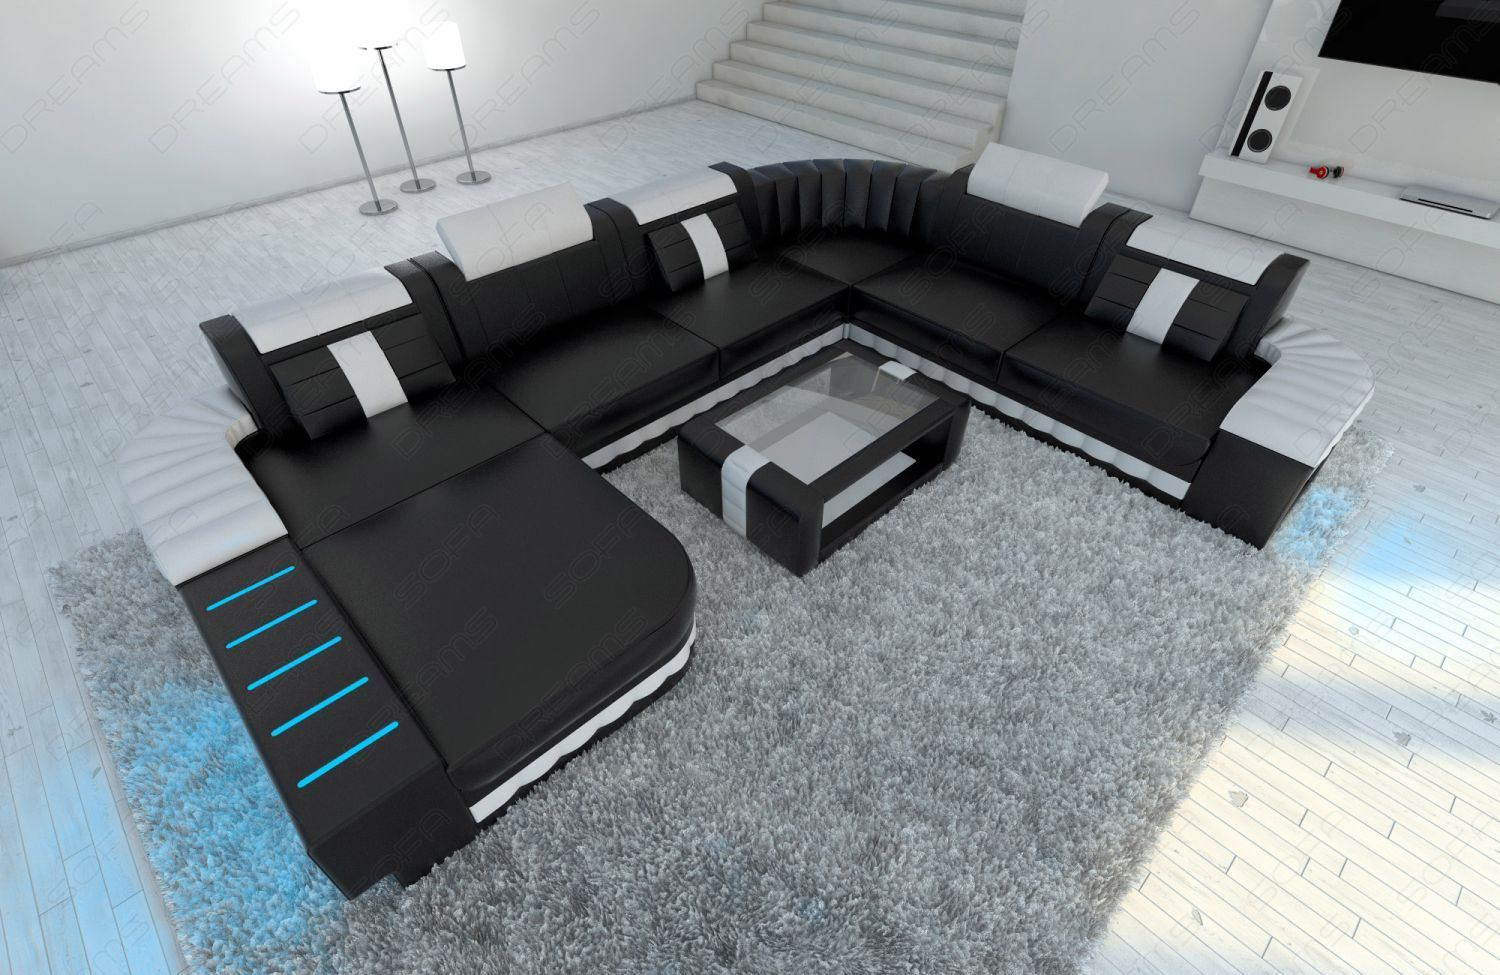 sofas ledersofa wohnlandschaft bellagio xxl led sofas g nstig online kaufen. Black Bedroom Furniture Sets. Home Design Ideas